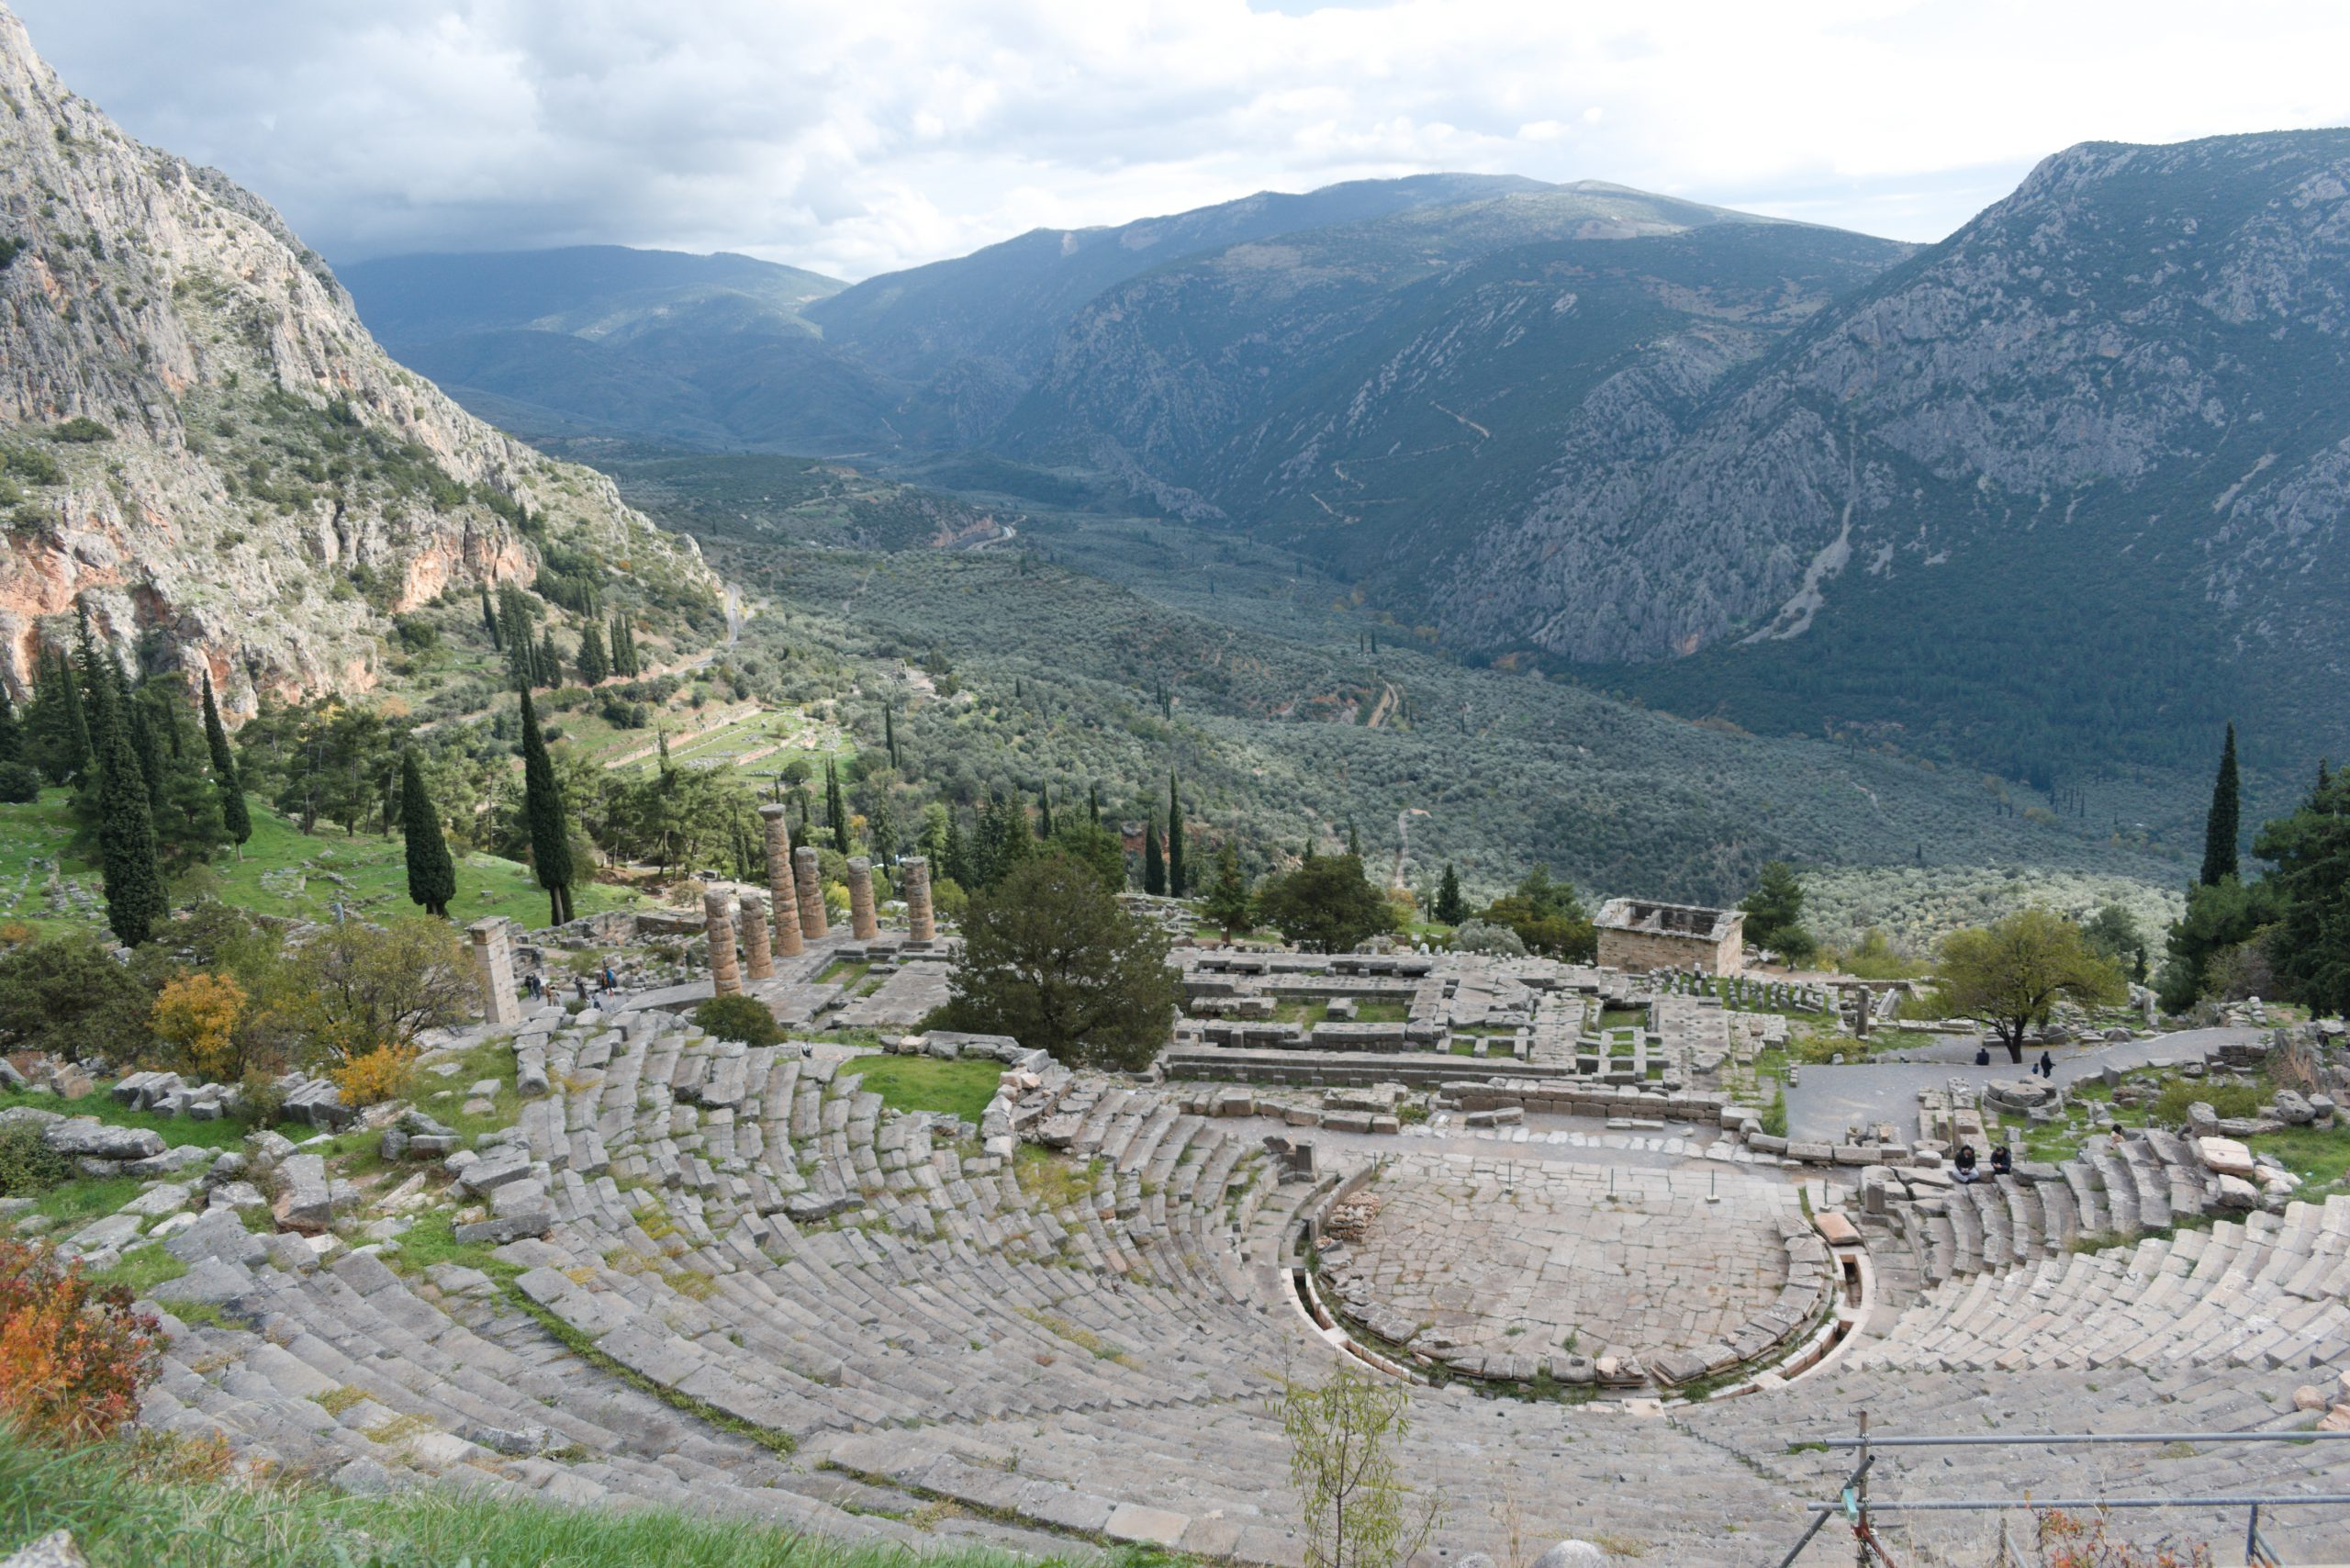 The Temple of Apollo in Greece surrounded by green mountain and field